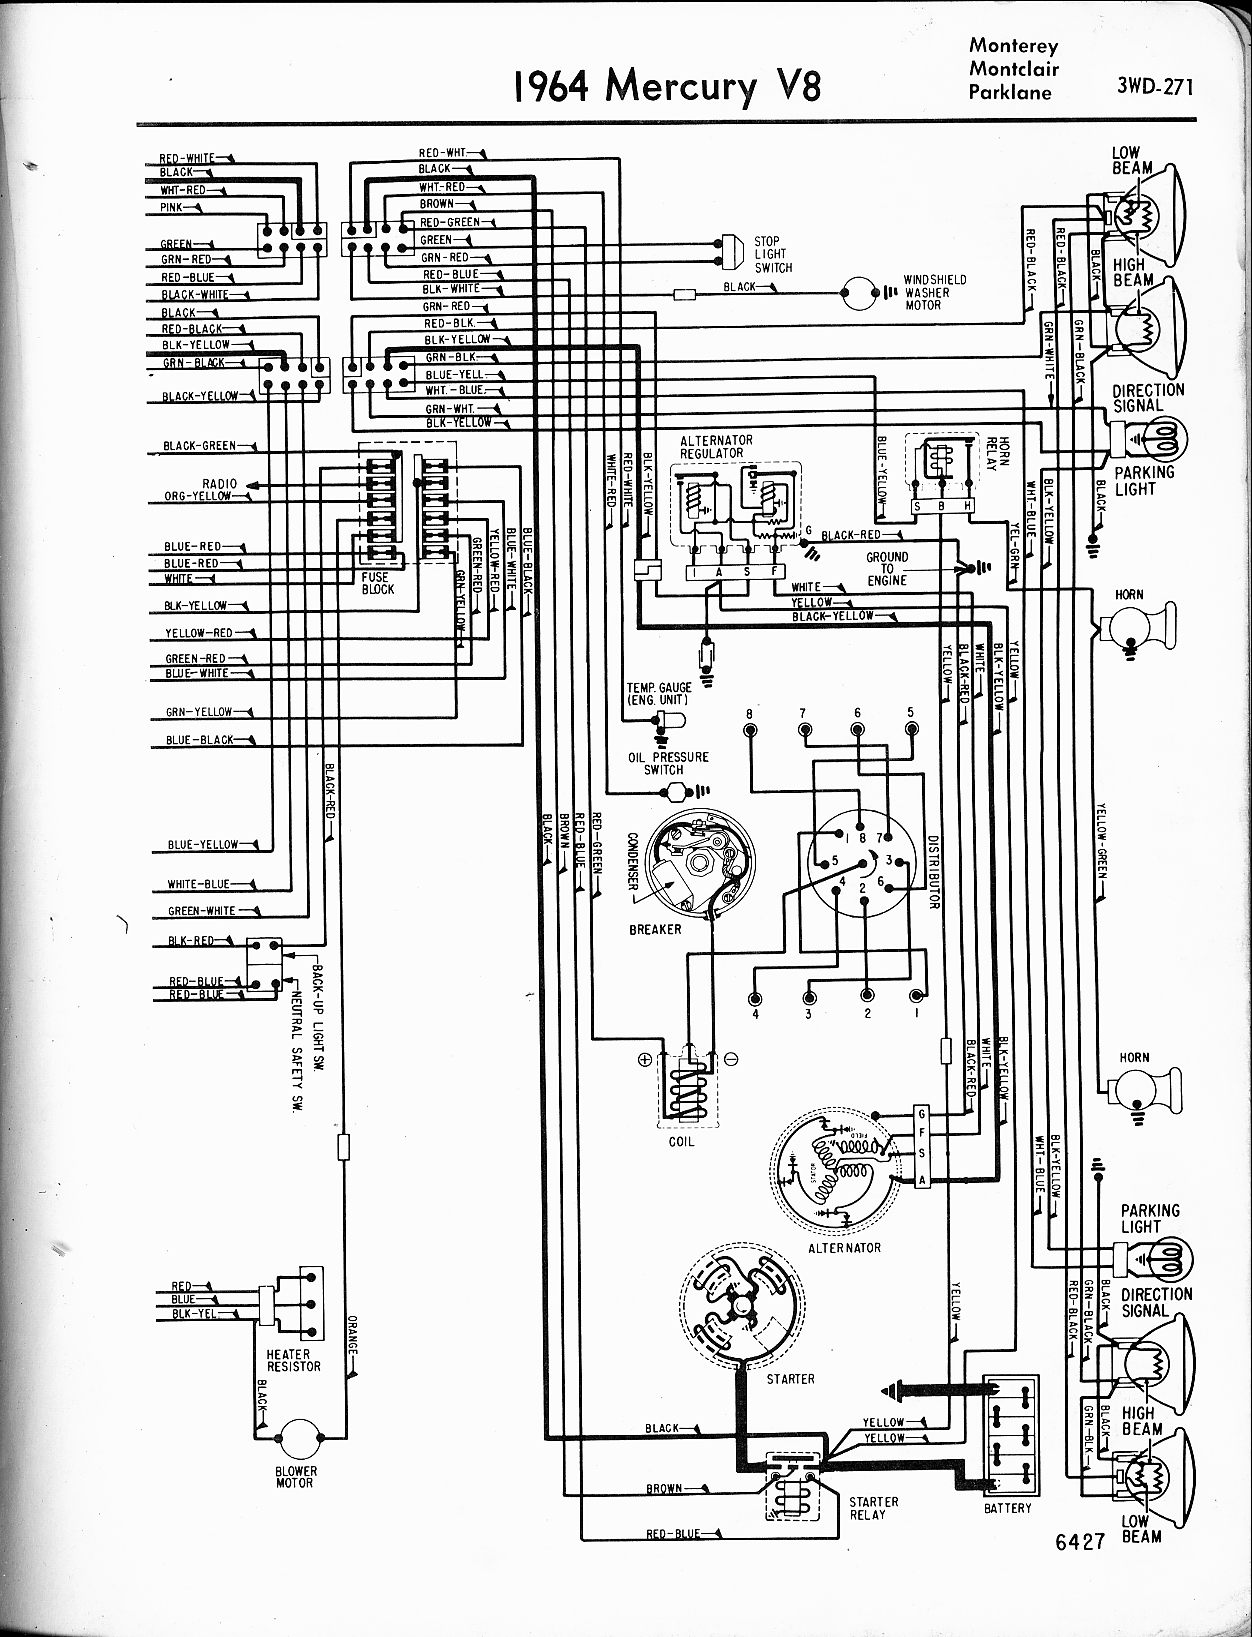 MWire5765 271 mercury wiring diagrams the old car manual project 1964 ford fairlane wiring diagram at panicattacktreatment.co